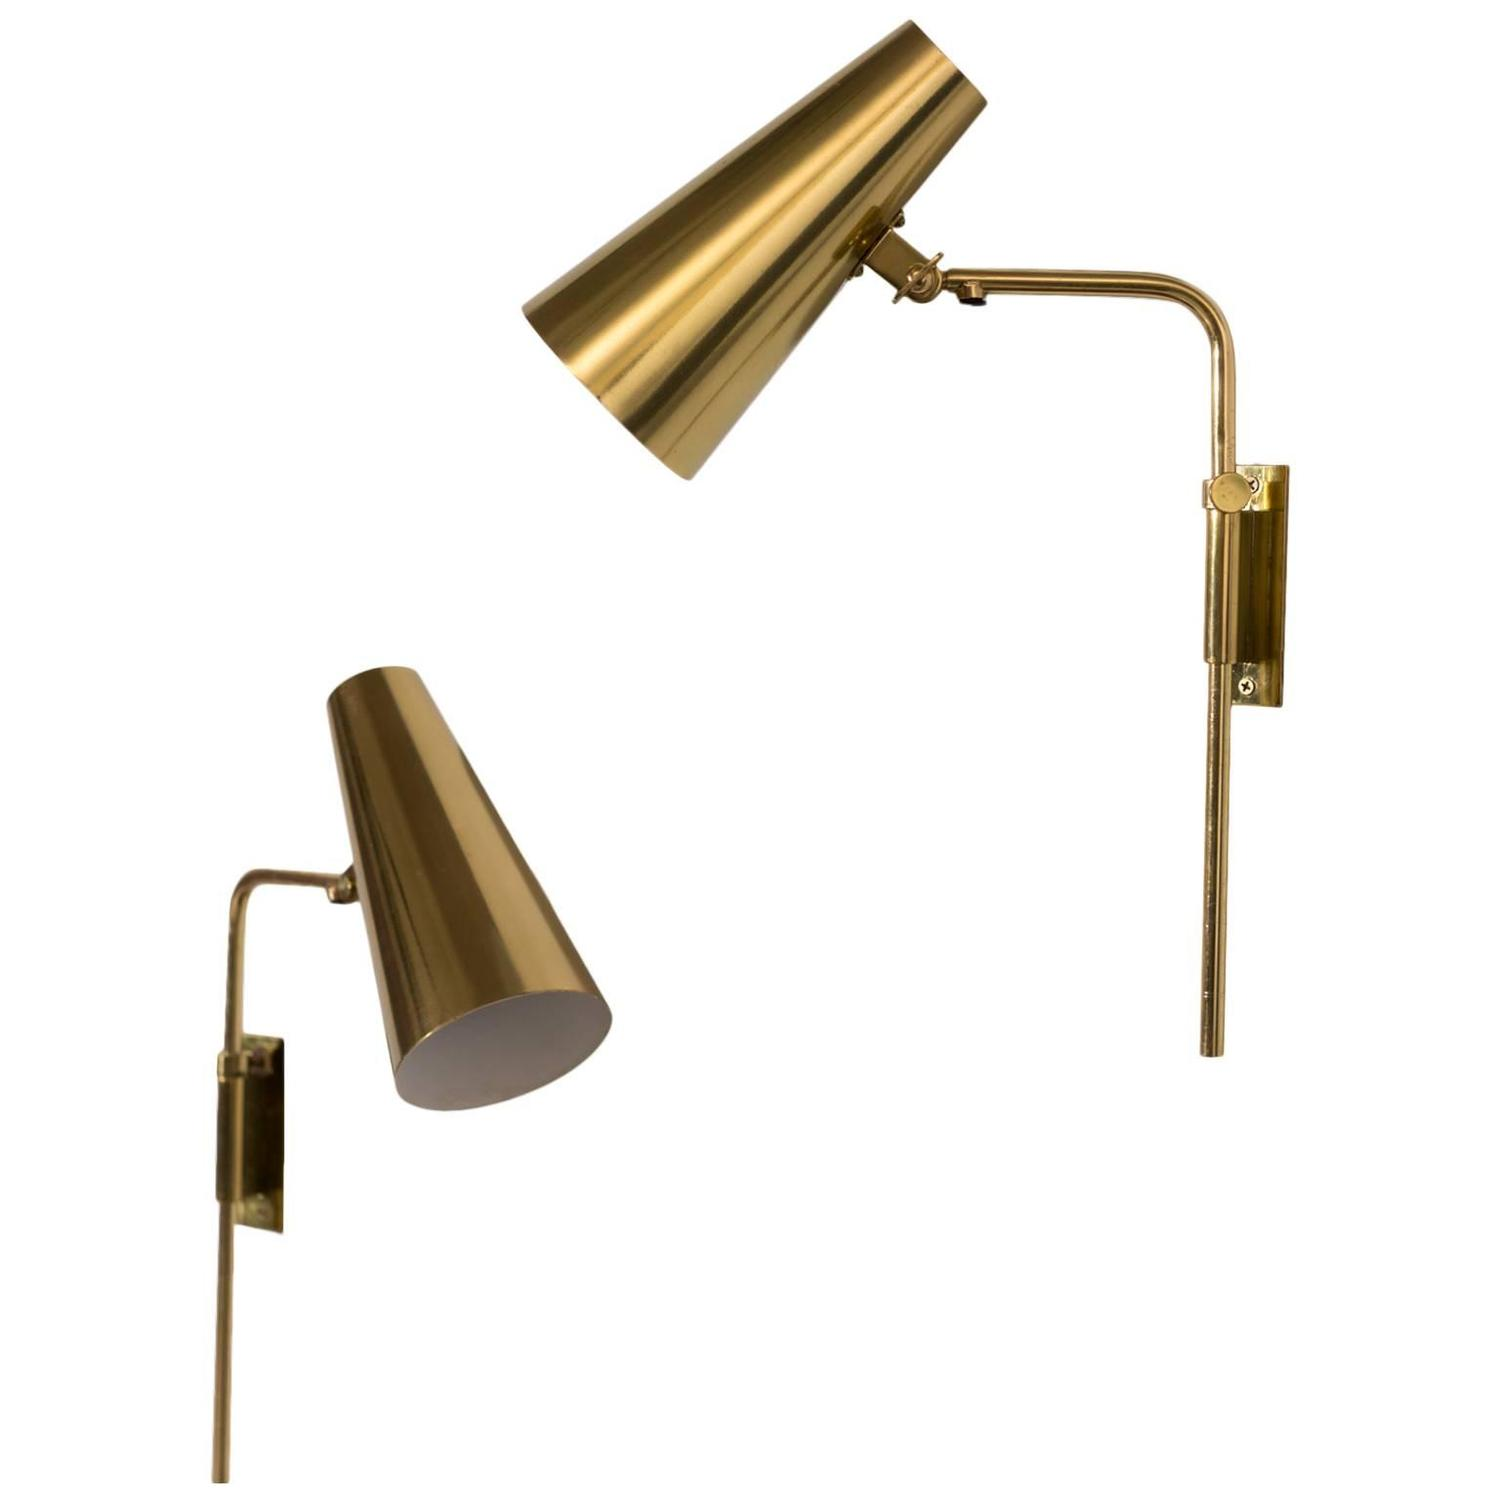 Paavo Tynell Adjustable Reading Wall Lamps, Taito OY at 1stdibs